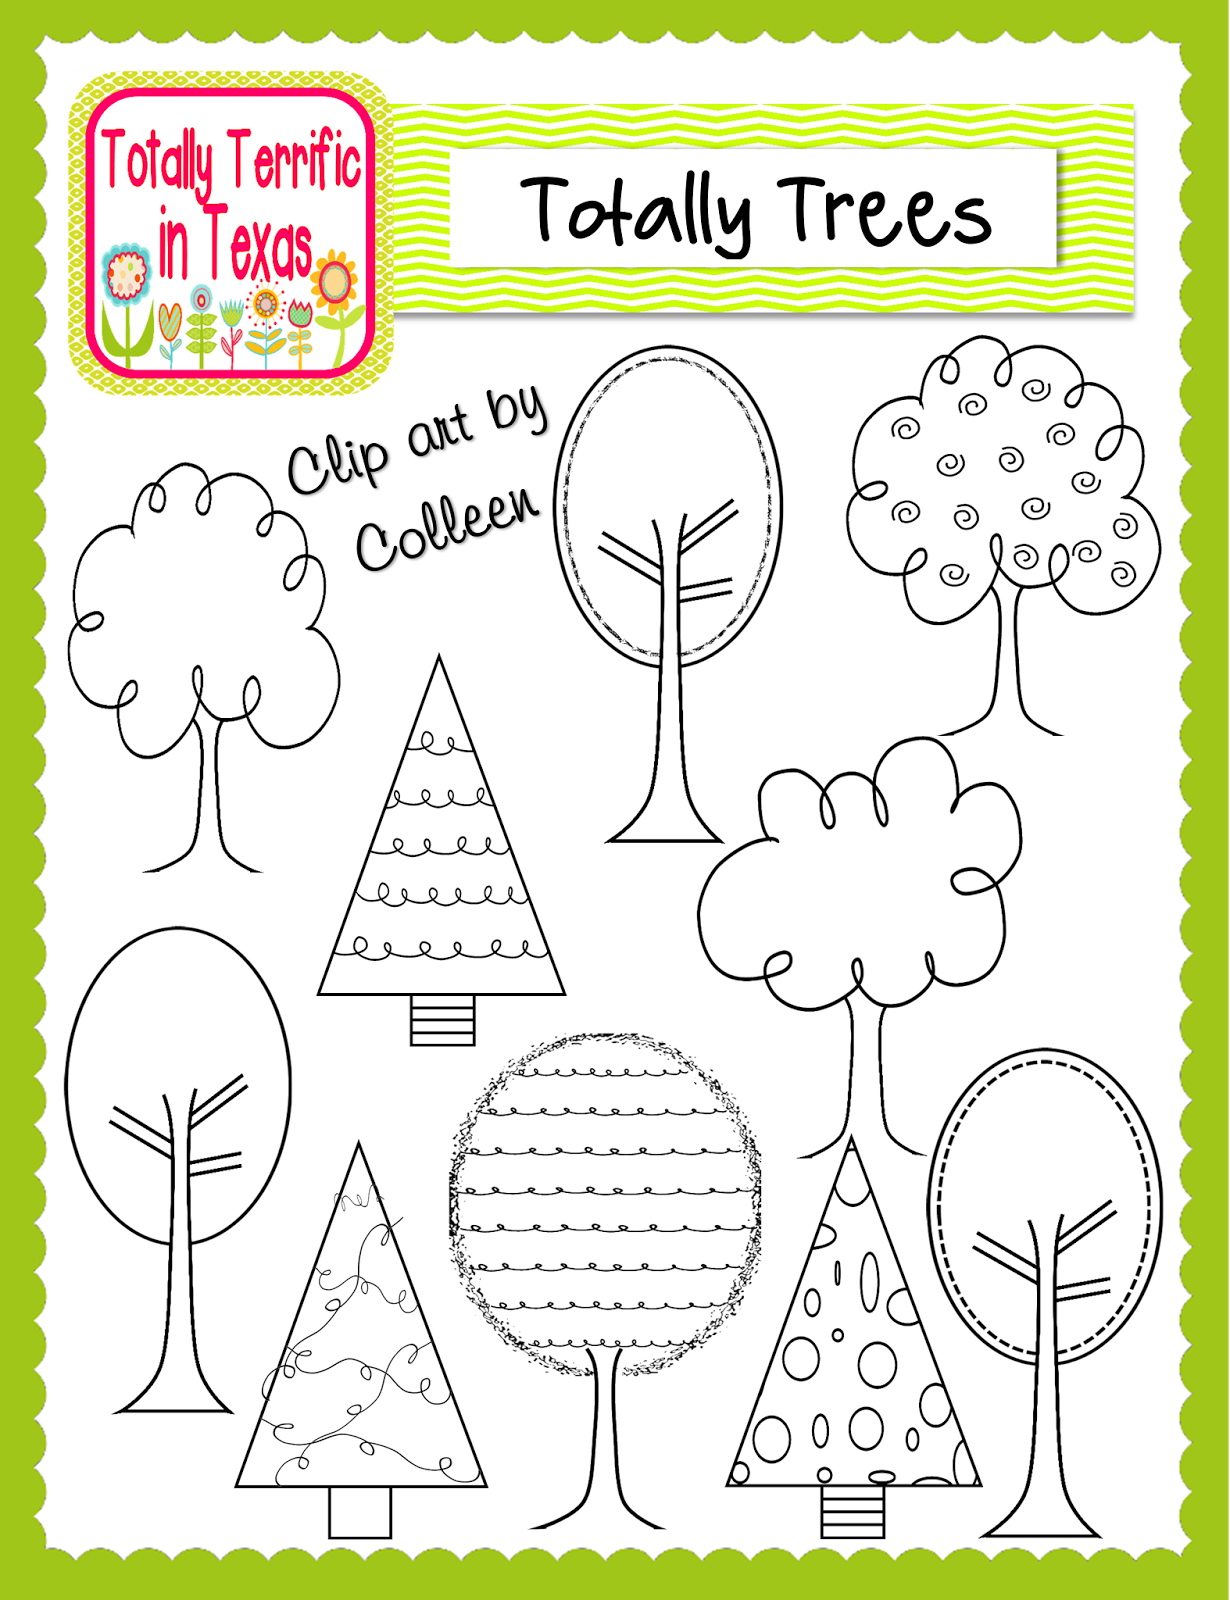 http://www.teacherspayteachers.com/Product/Totally-Trees-Clip-Art-1010482